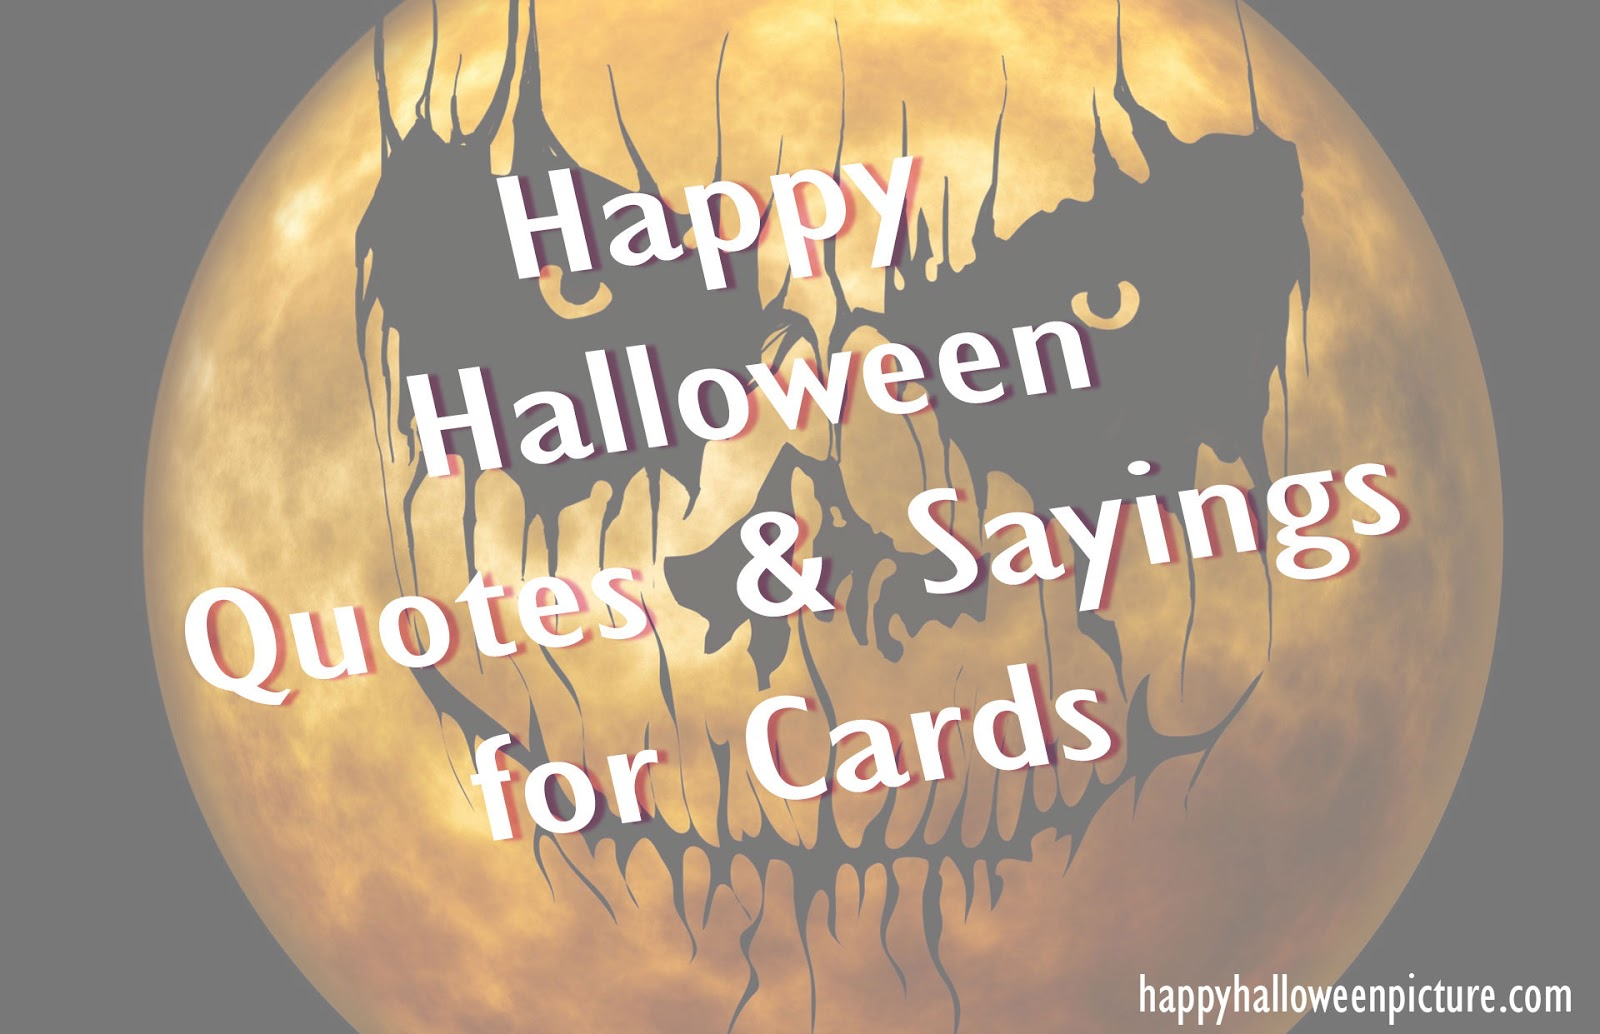 Marvelous Happy Halloween Quotes And Sayings For Cards